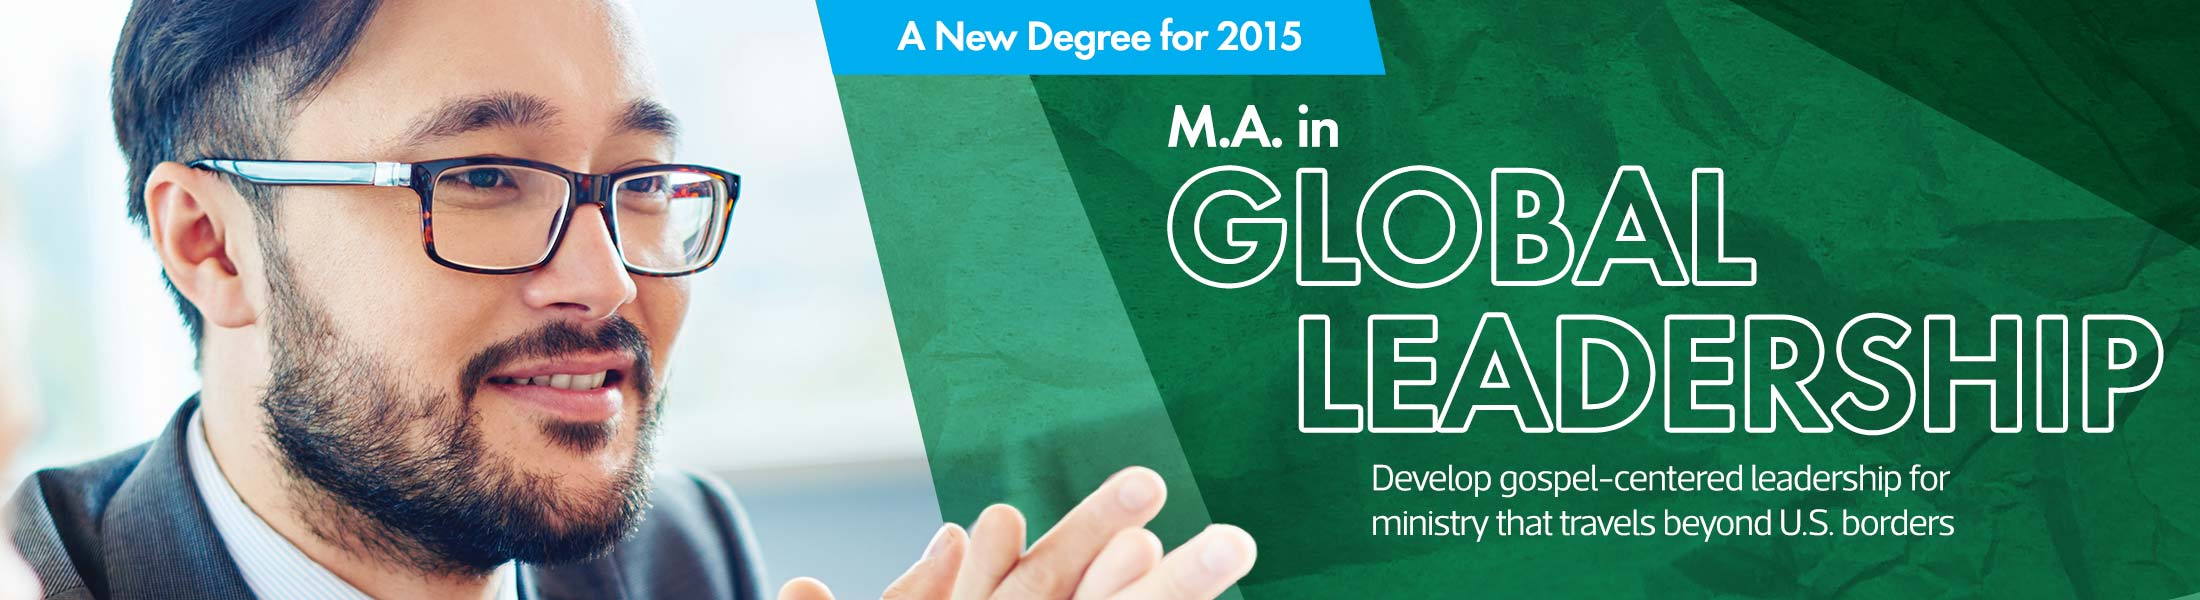 Announcing the M.A. in Global Leadership